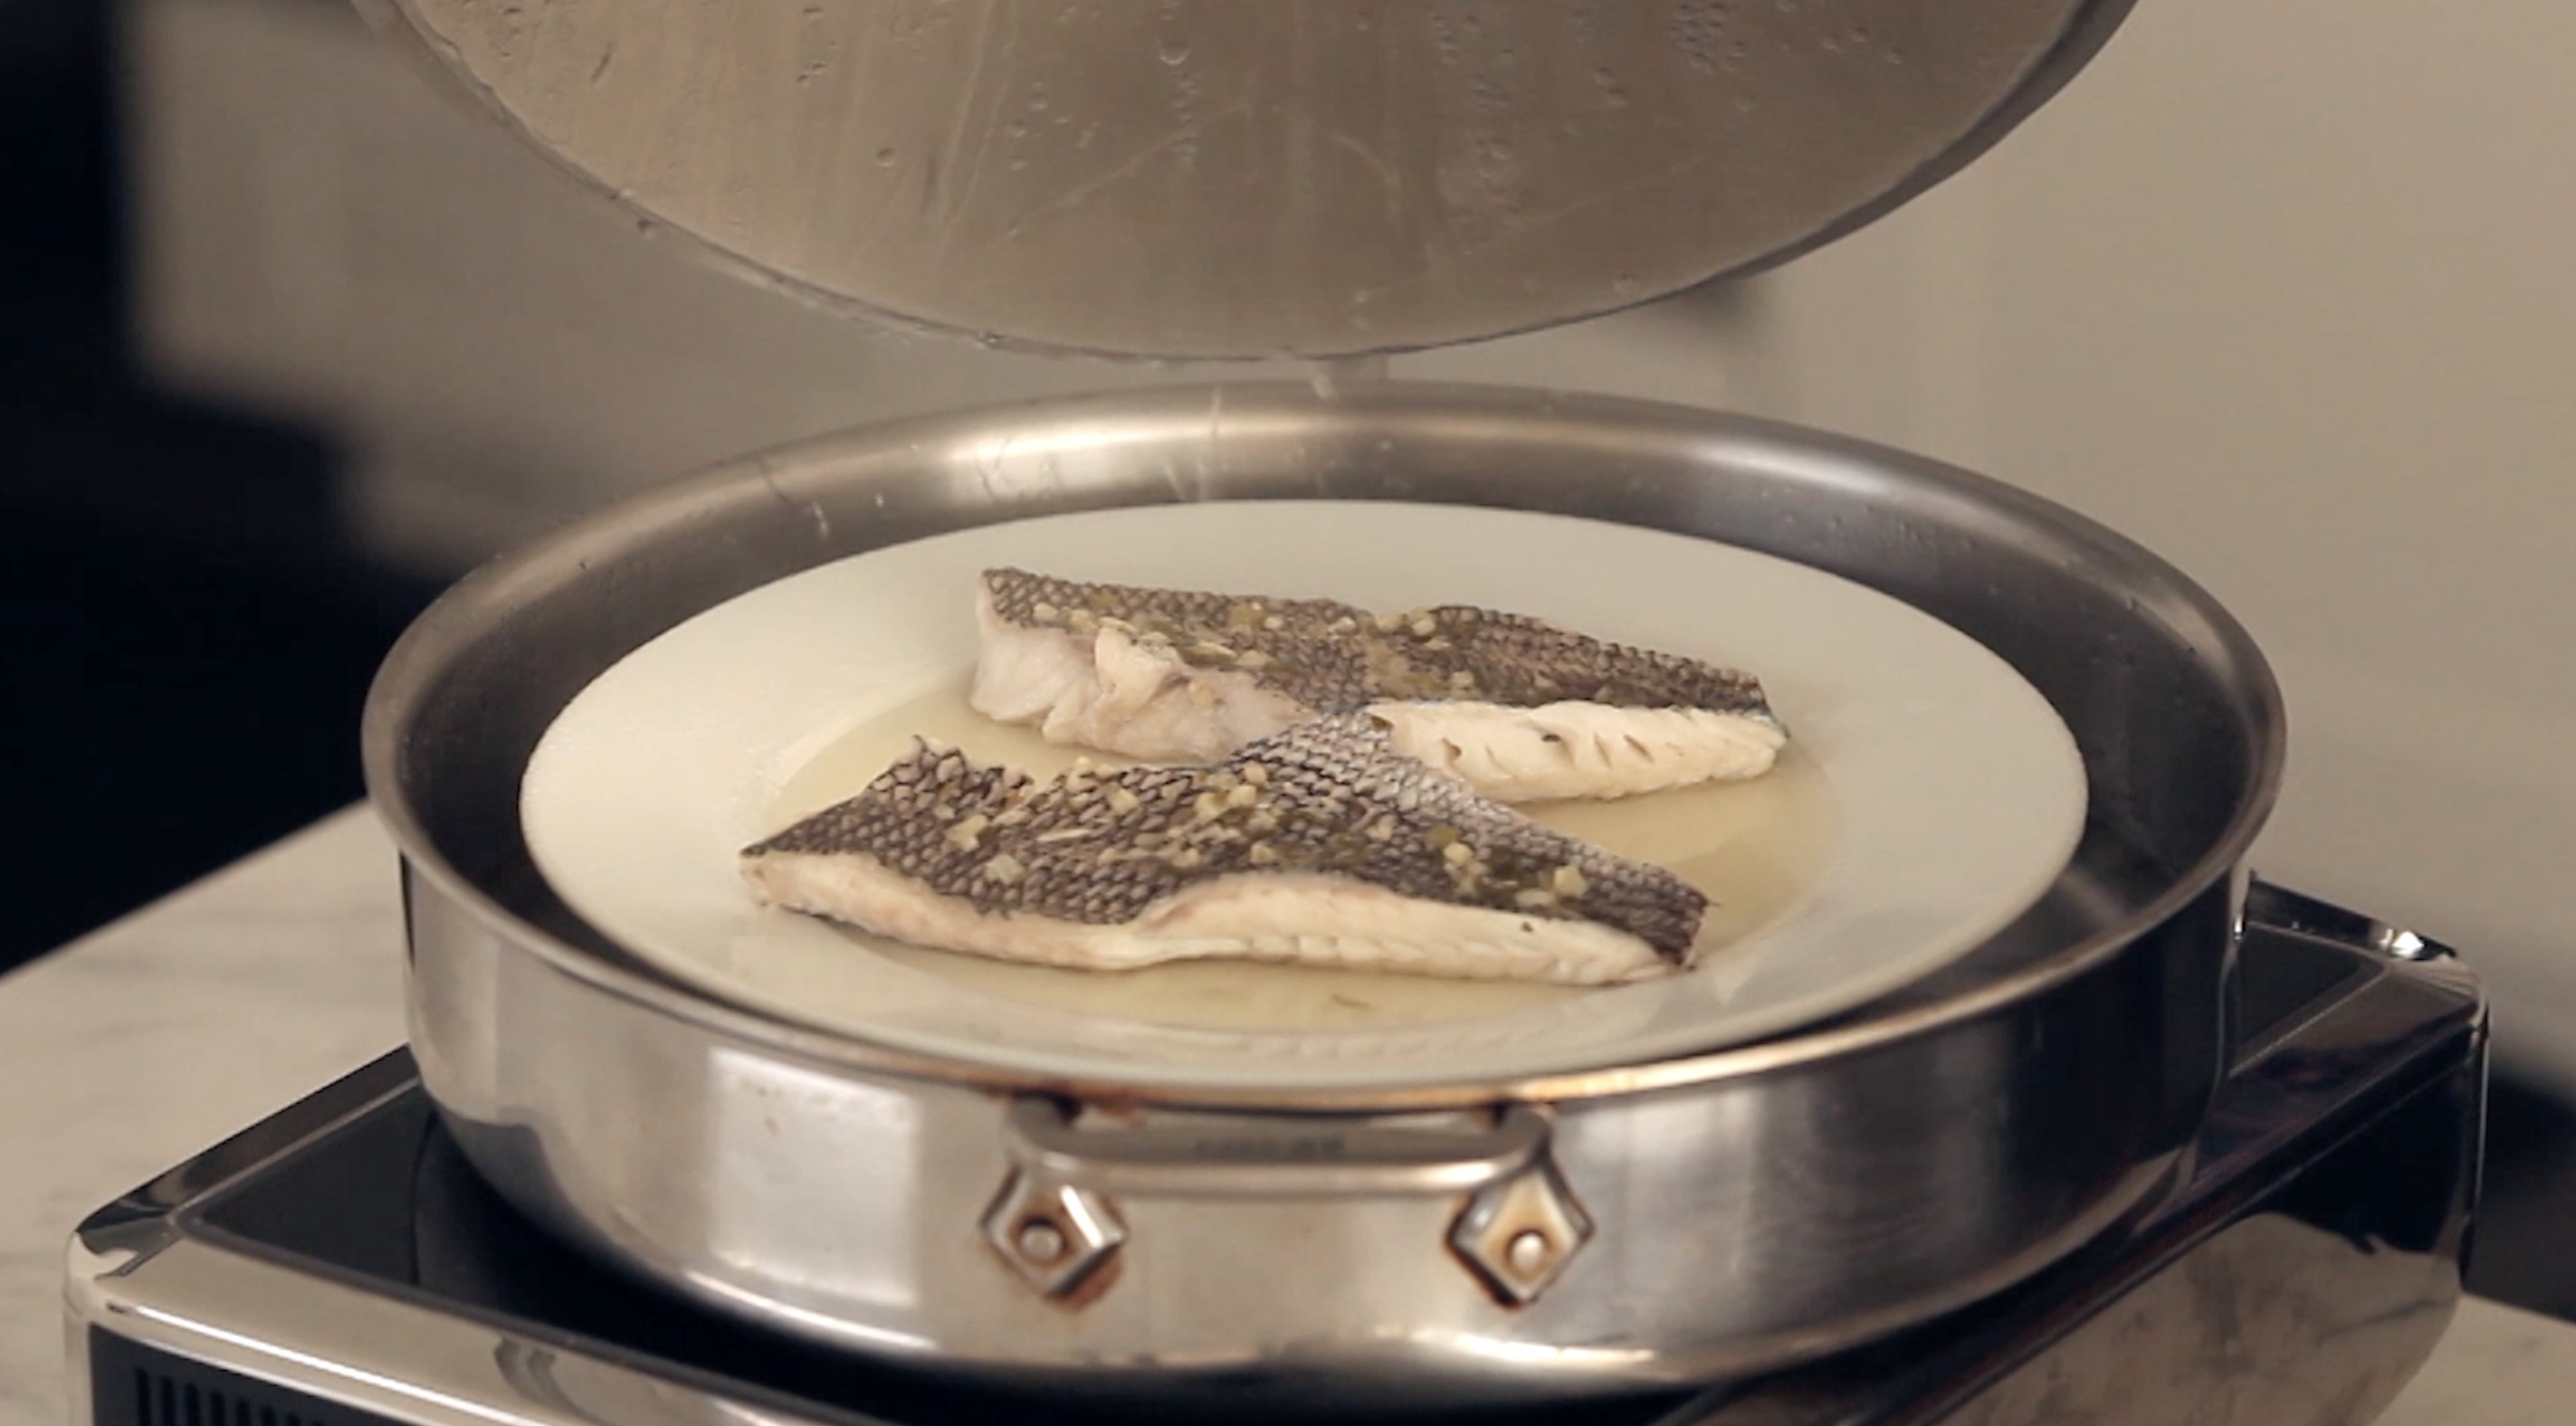 How to Steam Without a Steamer